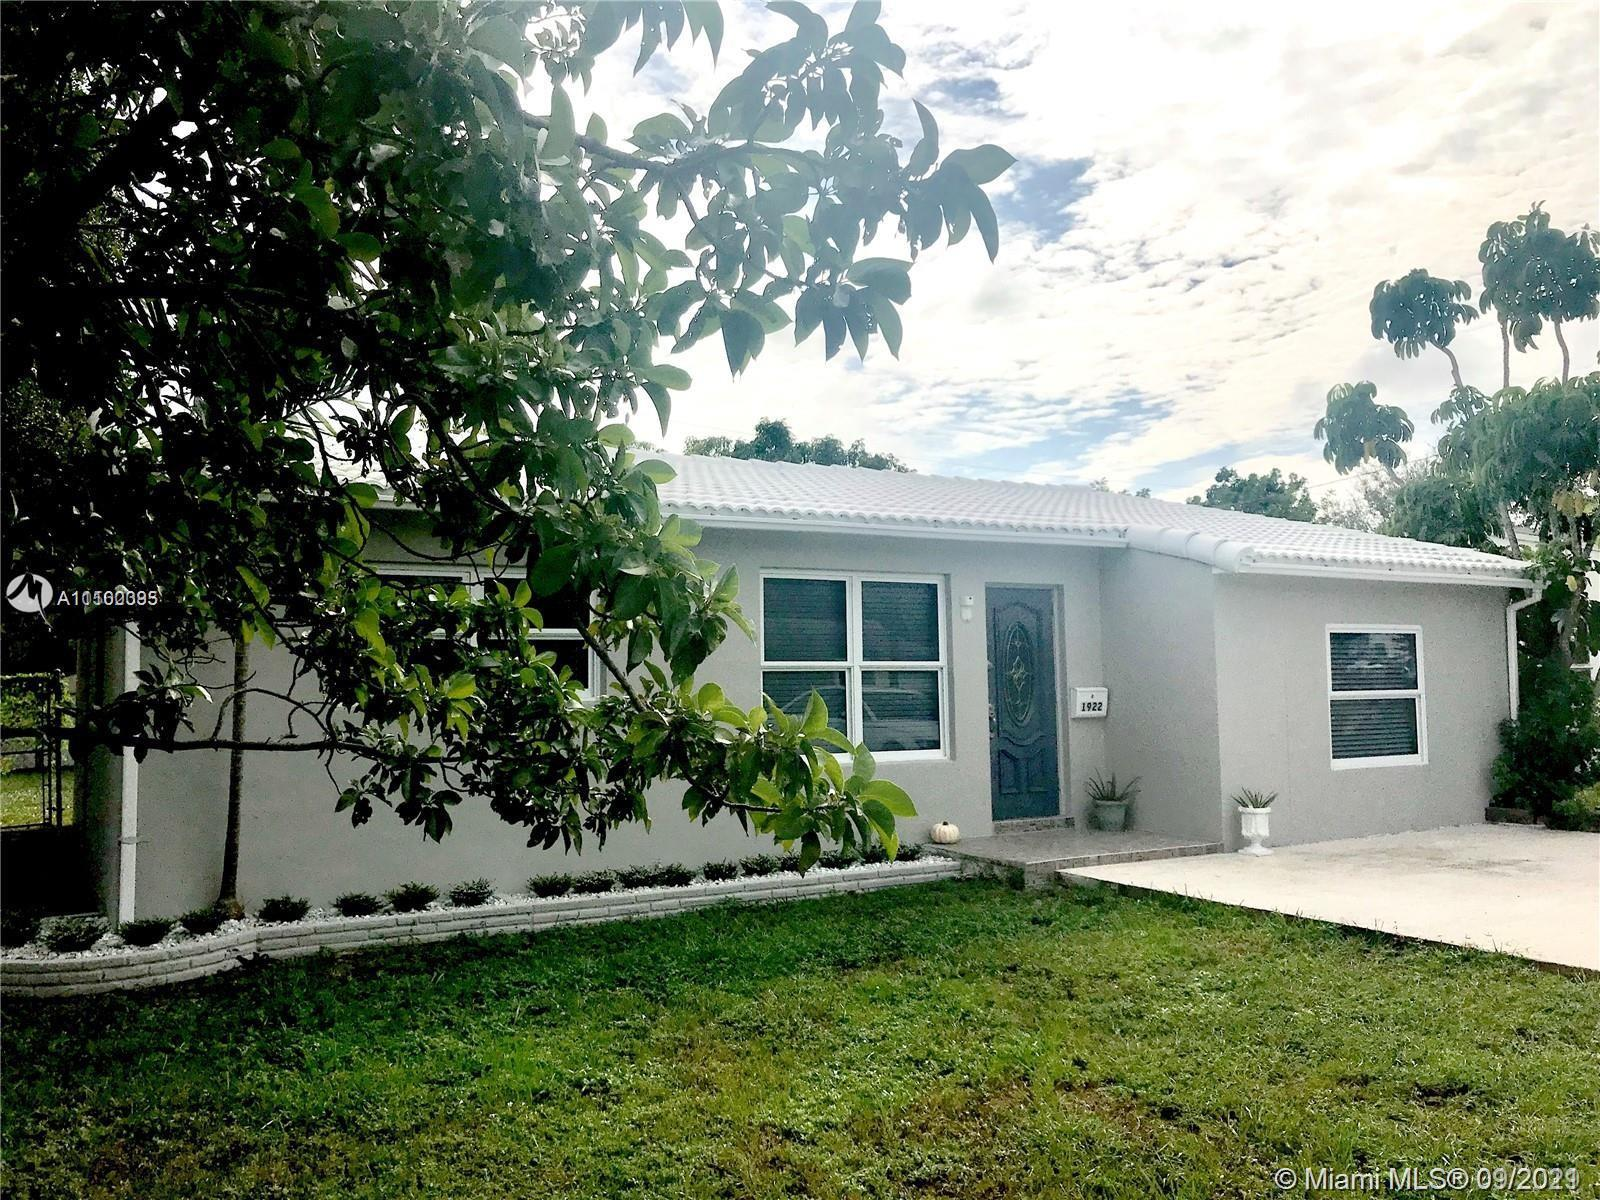 AMAZING OPPORTUNITY FOR THIS REMODELED 3 BEDROOMS 2 1/2 BATHS HOME* THIS HOME FEATURES IMPACT WINDOW